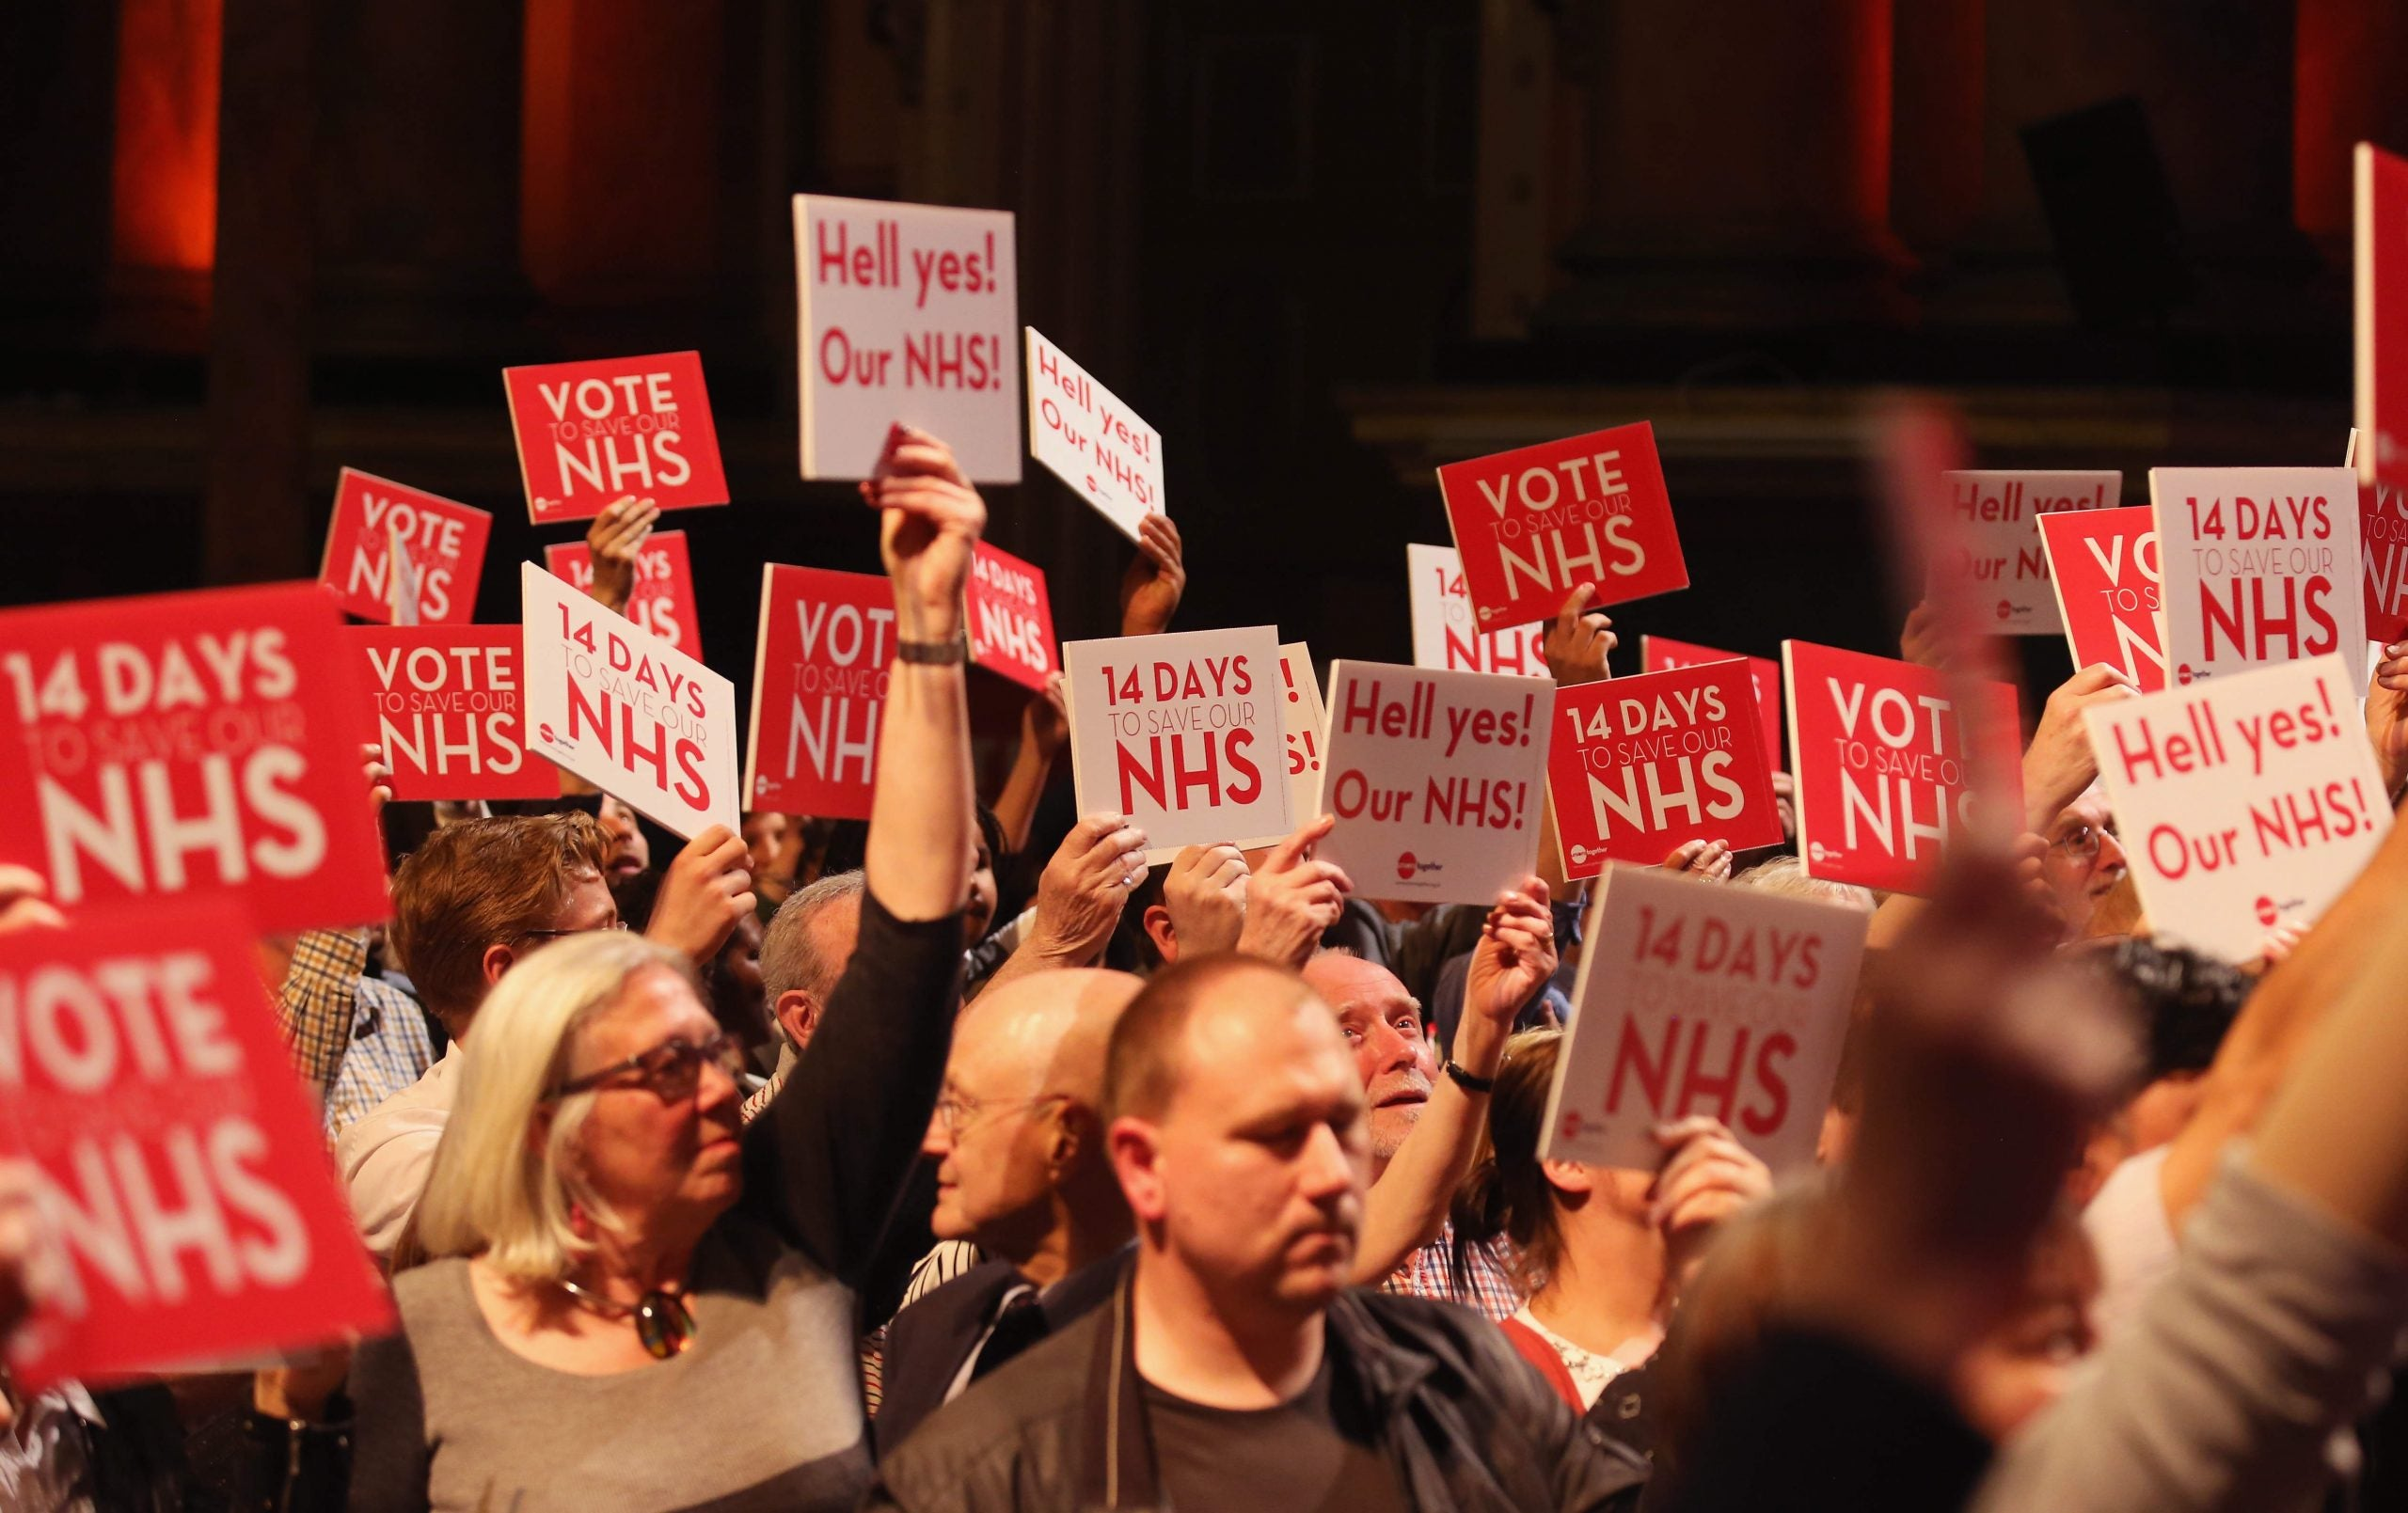 If we want to build a new economy, we have to recognise not everyone can work for the NHS